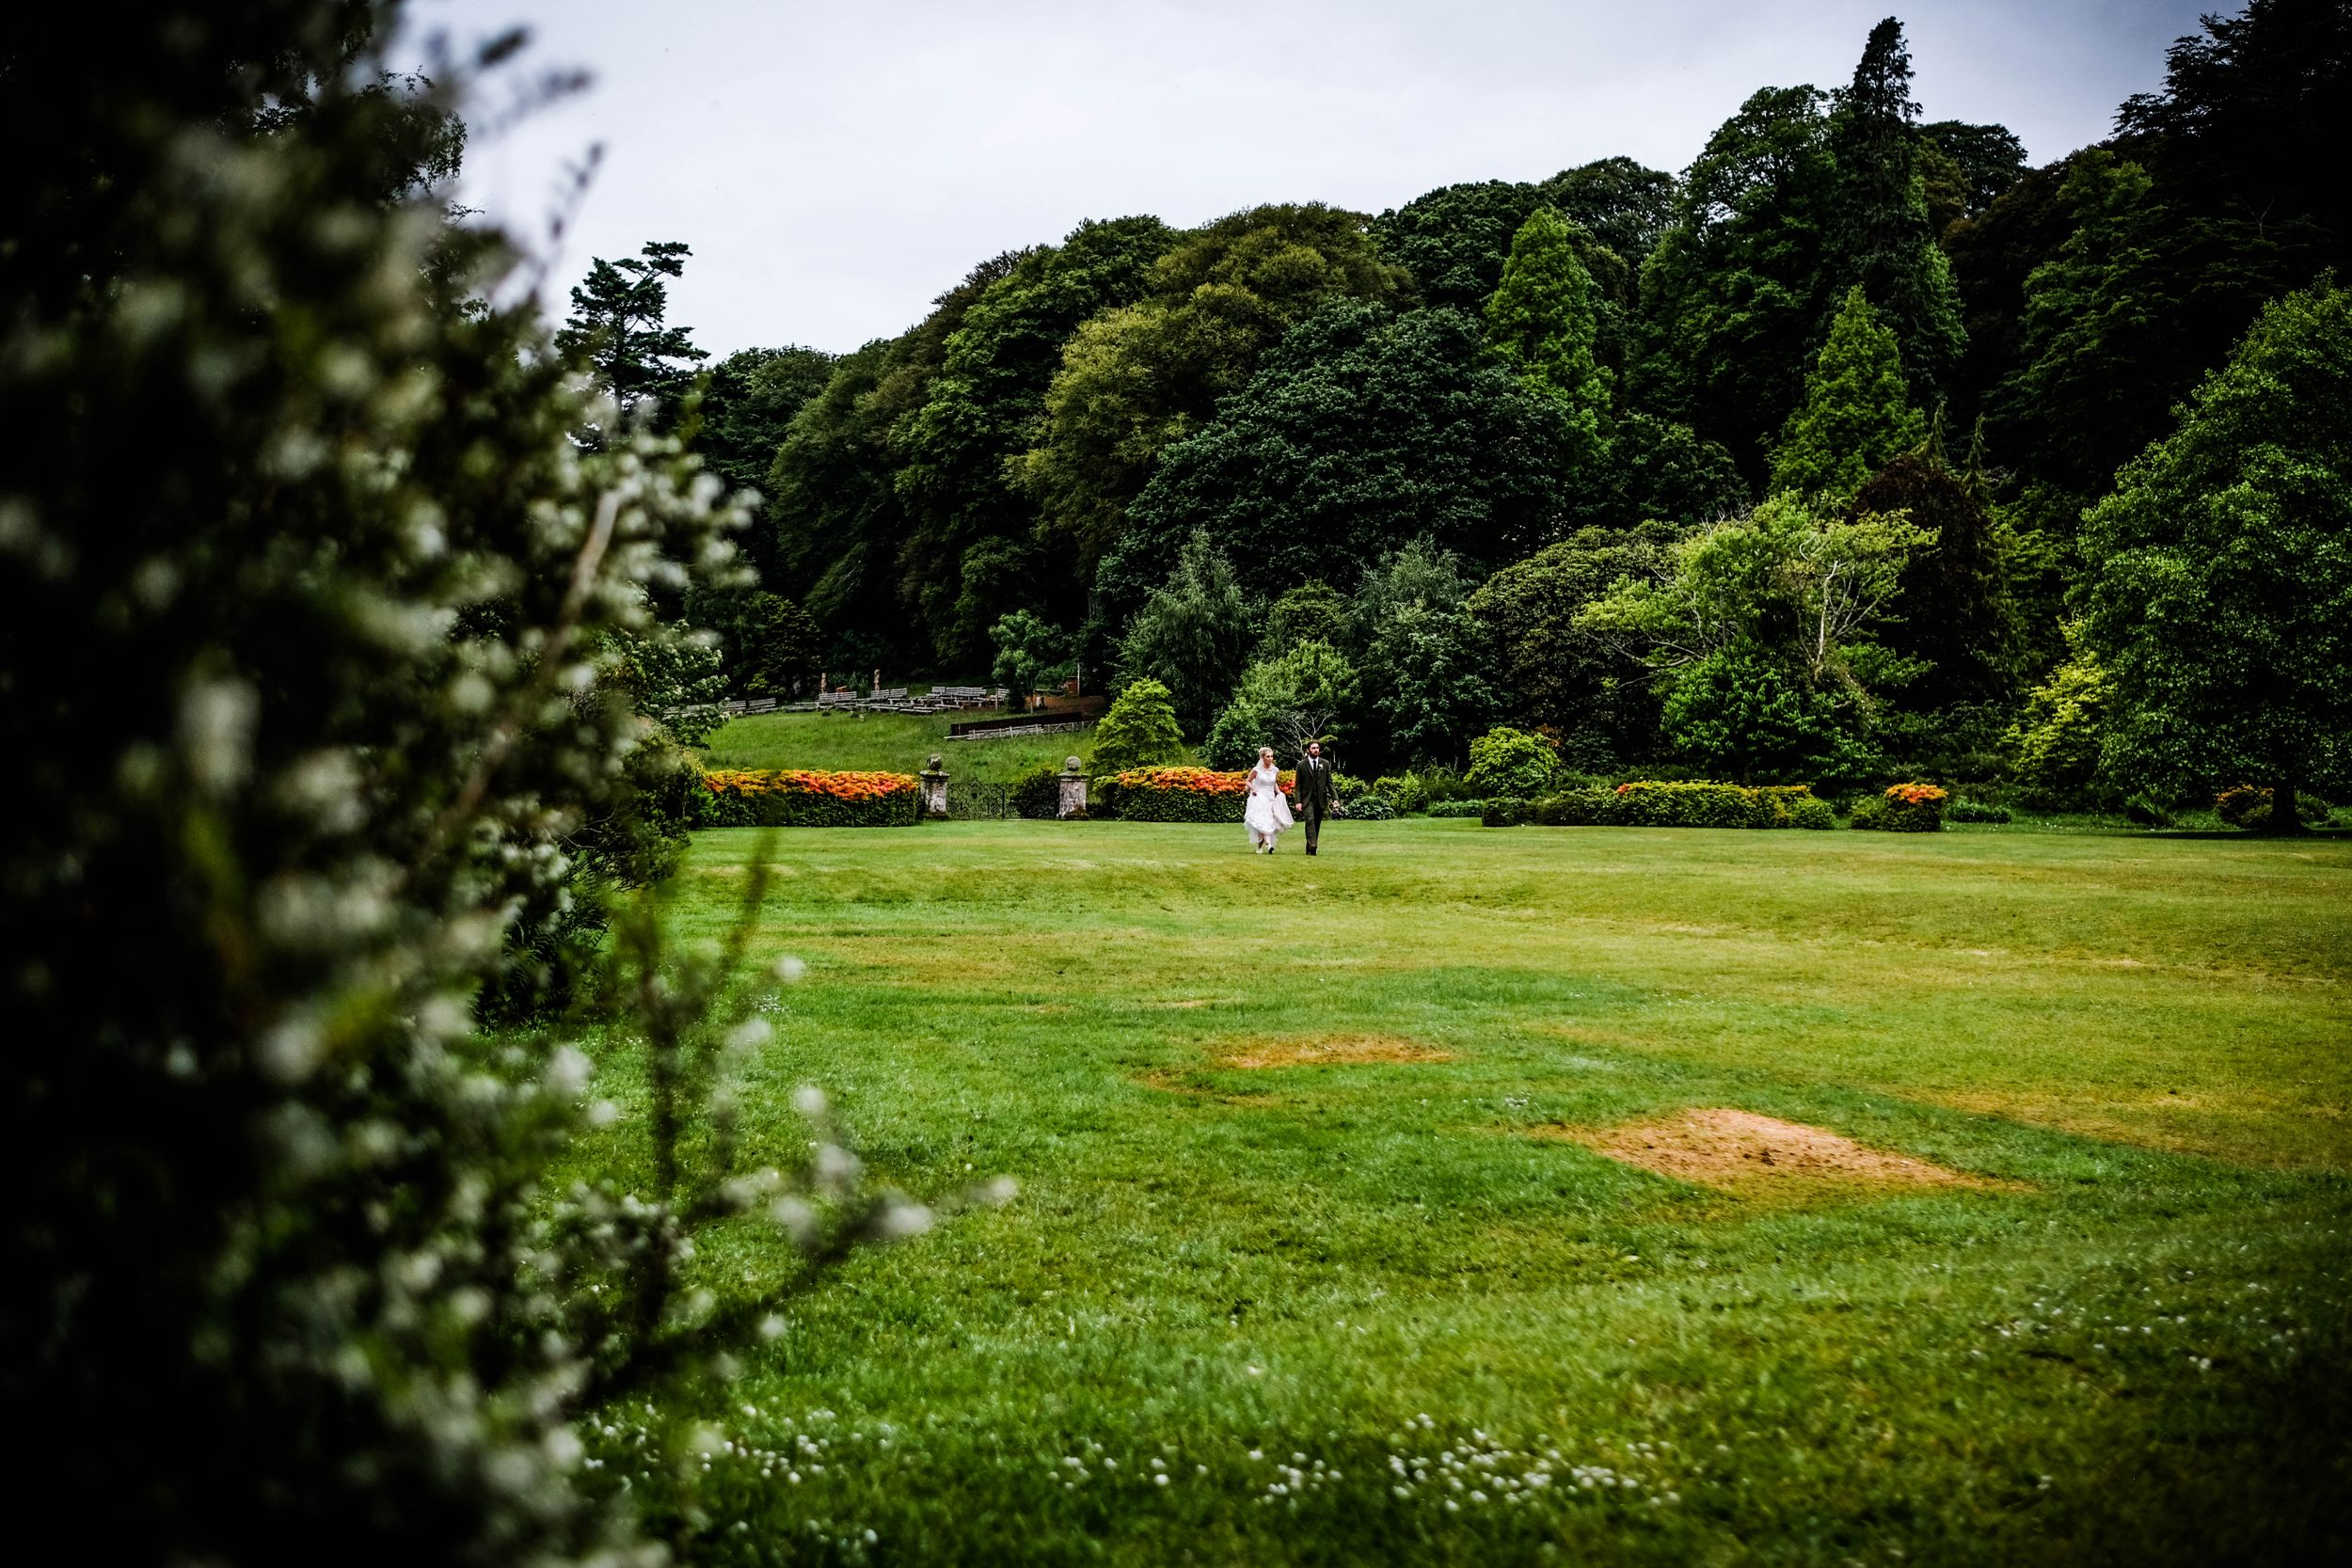 Chelsea Cannar Photography - Lake district wedding photographer, natural and relaxed coverage - Muncaster Castle Wedding